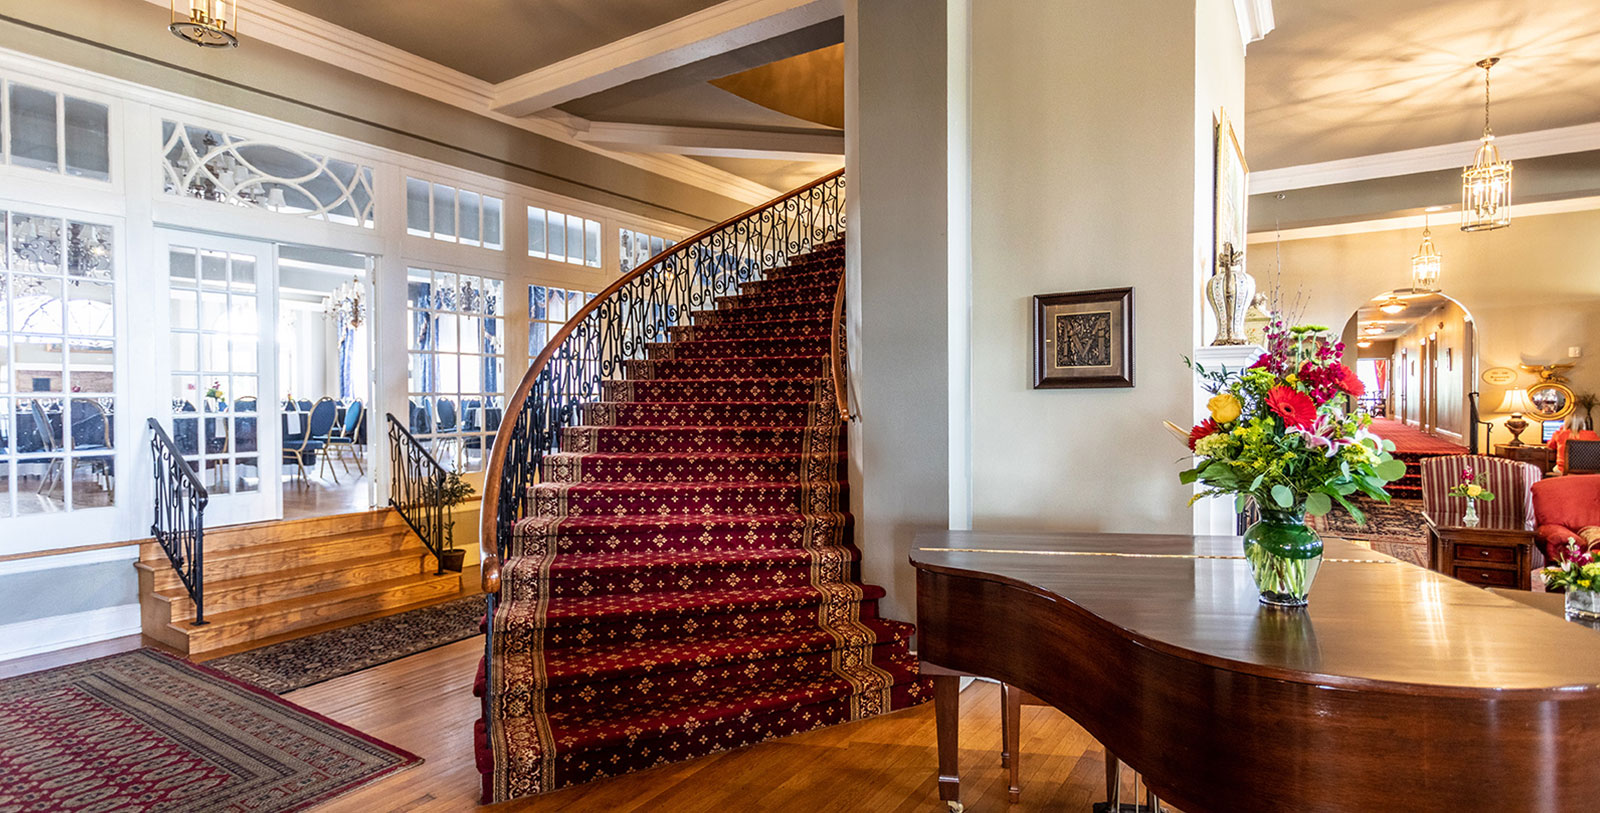 Image of Staircase at The Mimslyn Inn, 1931, Member of Historic Hotels of America, in Luray, Virginia, Hot Deals